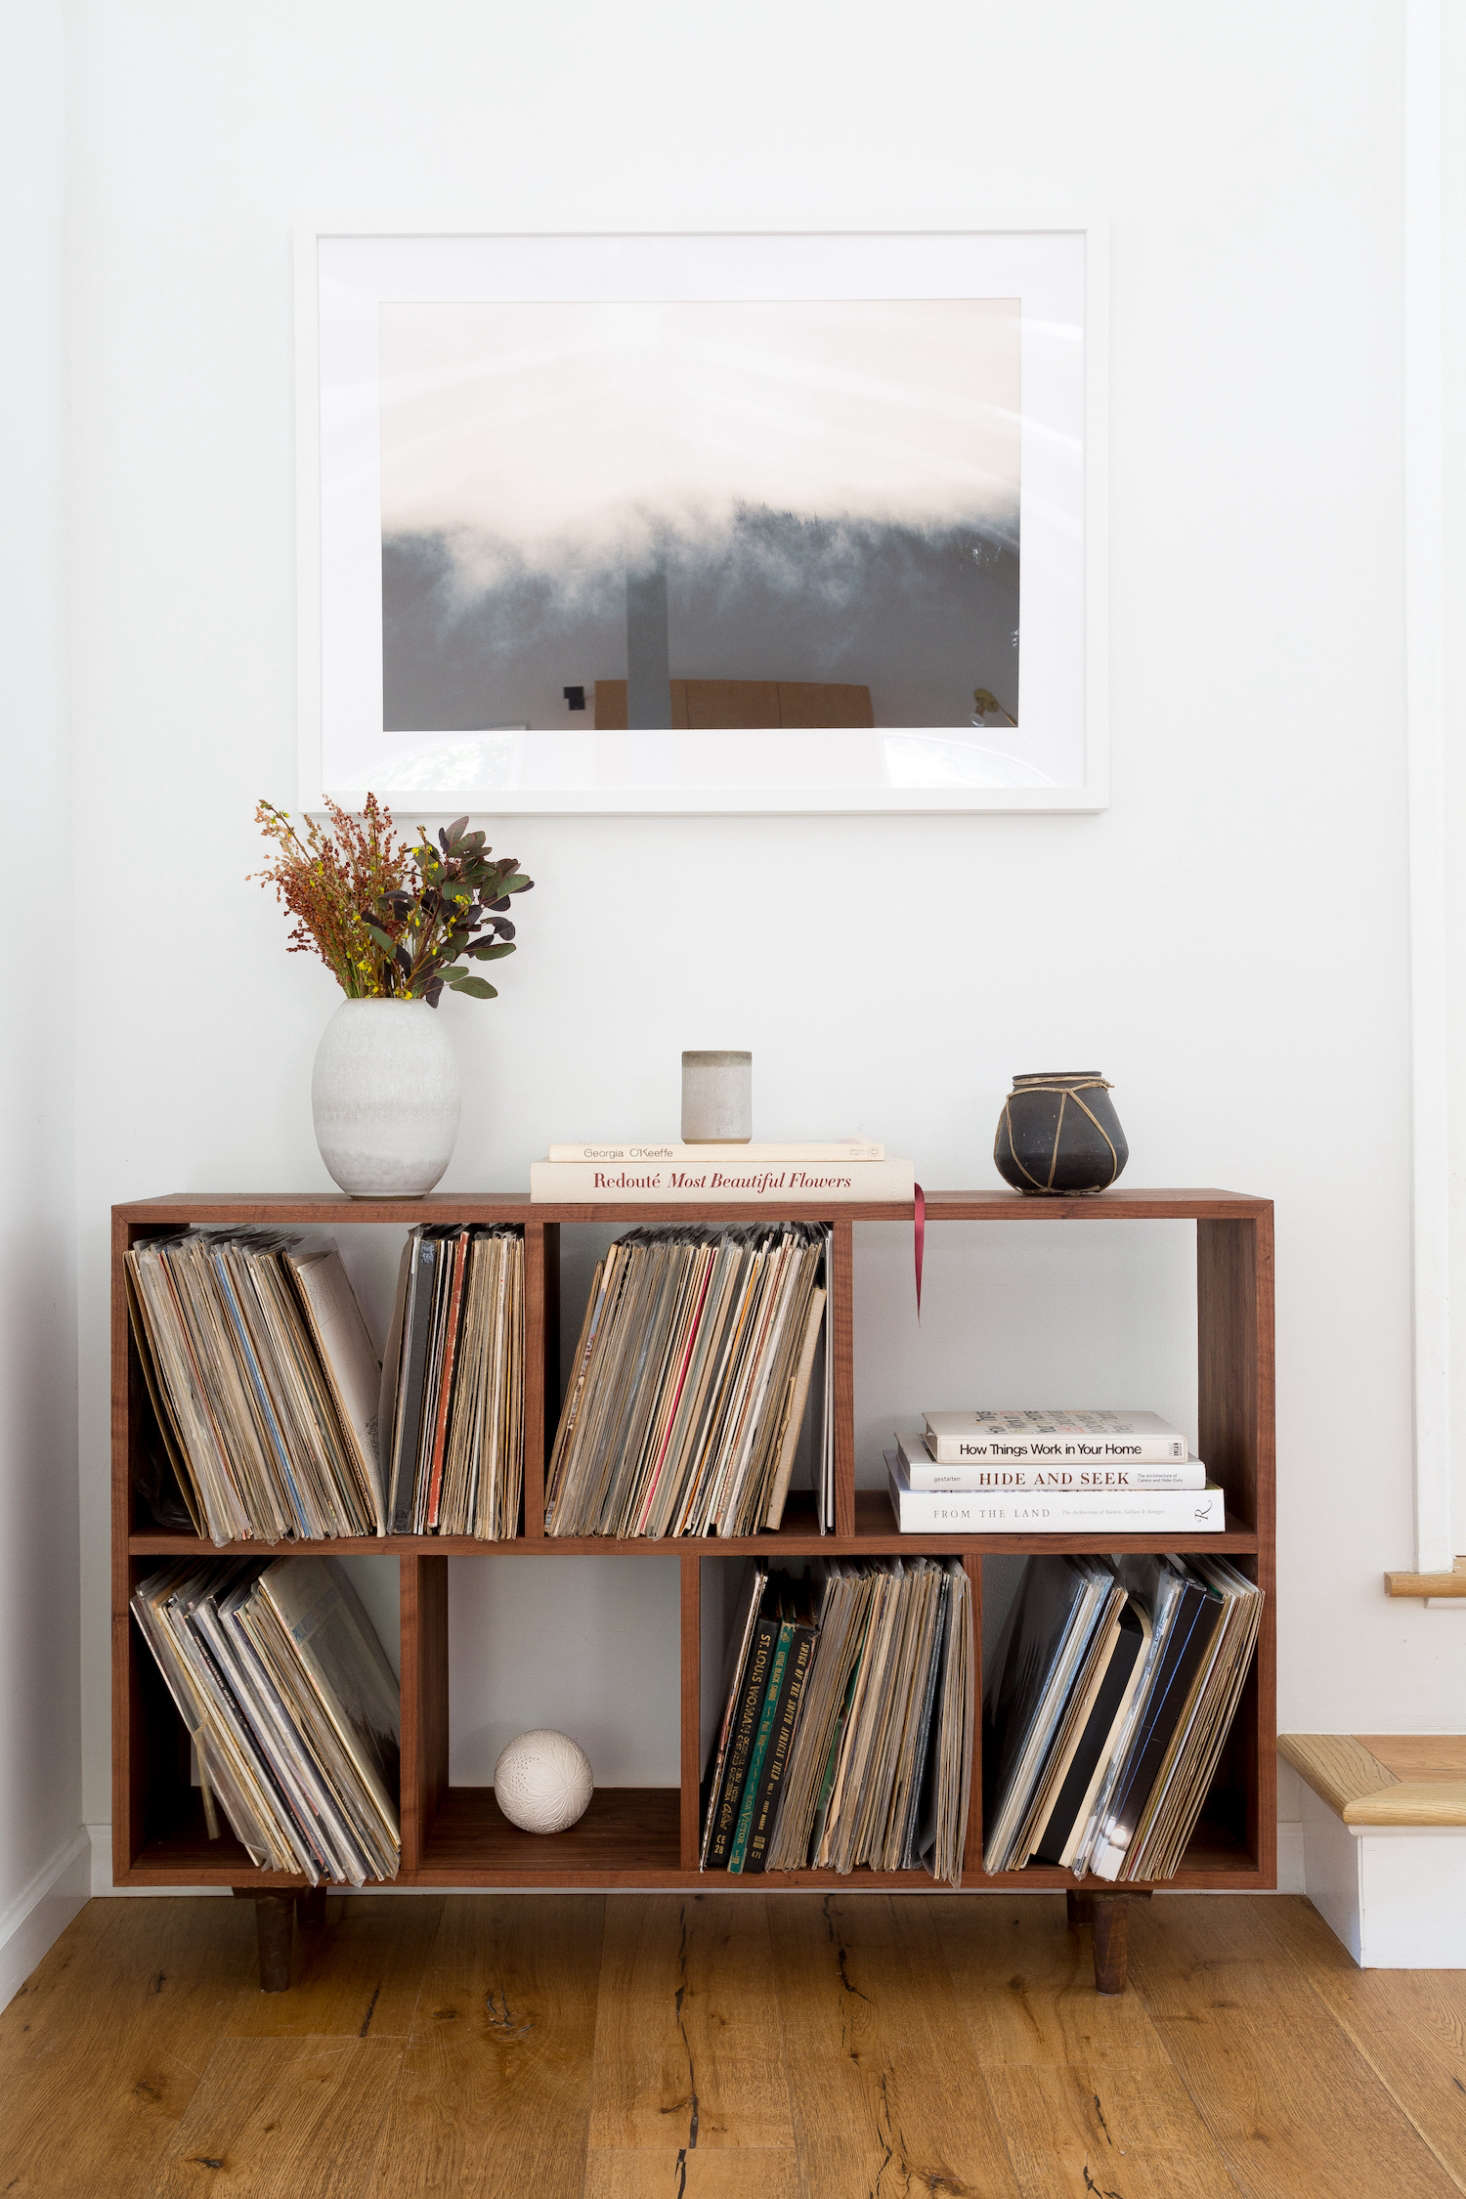 Hunter and her husband have an admirable vinyl collection. The artwork hanging above the bookcase is by photographer Brian Merriam, sourced from online art dealerTappan.